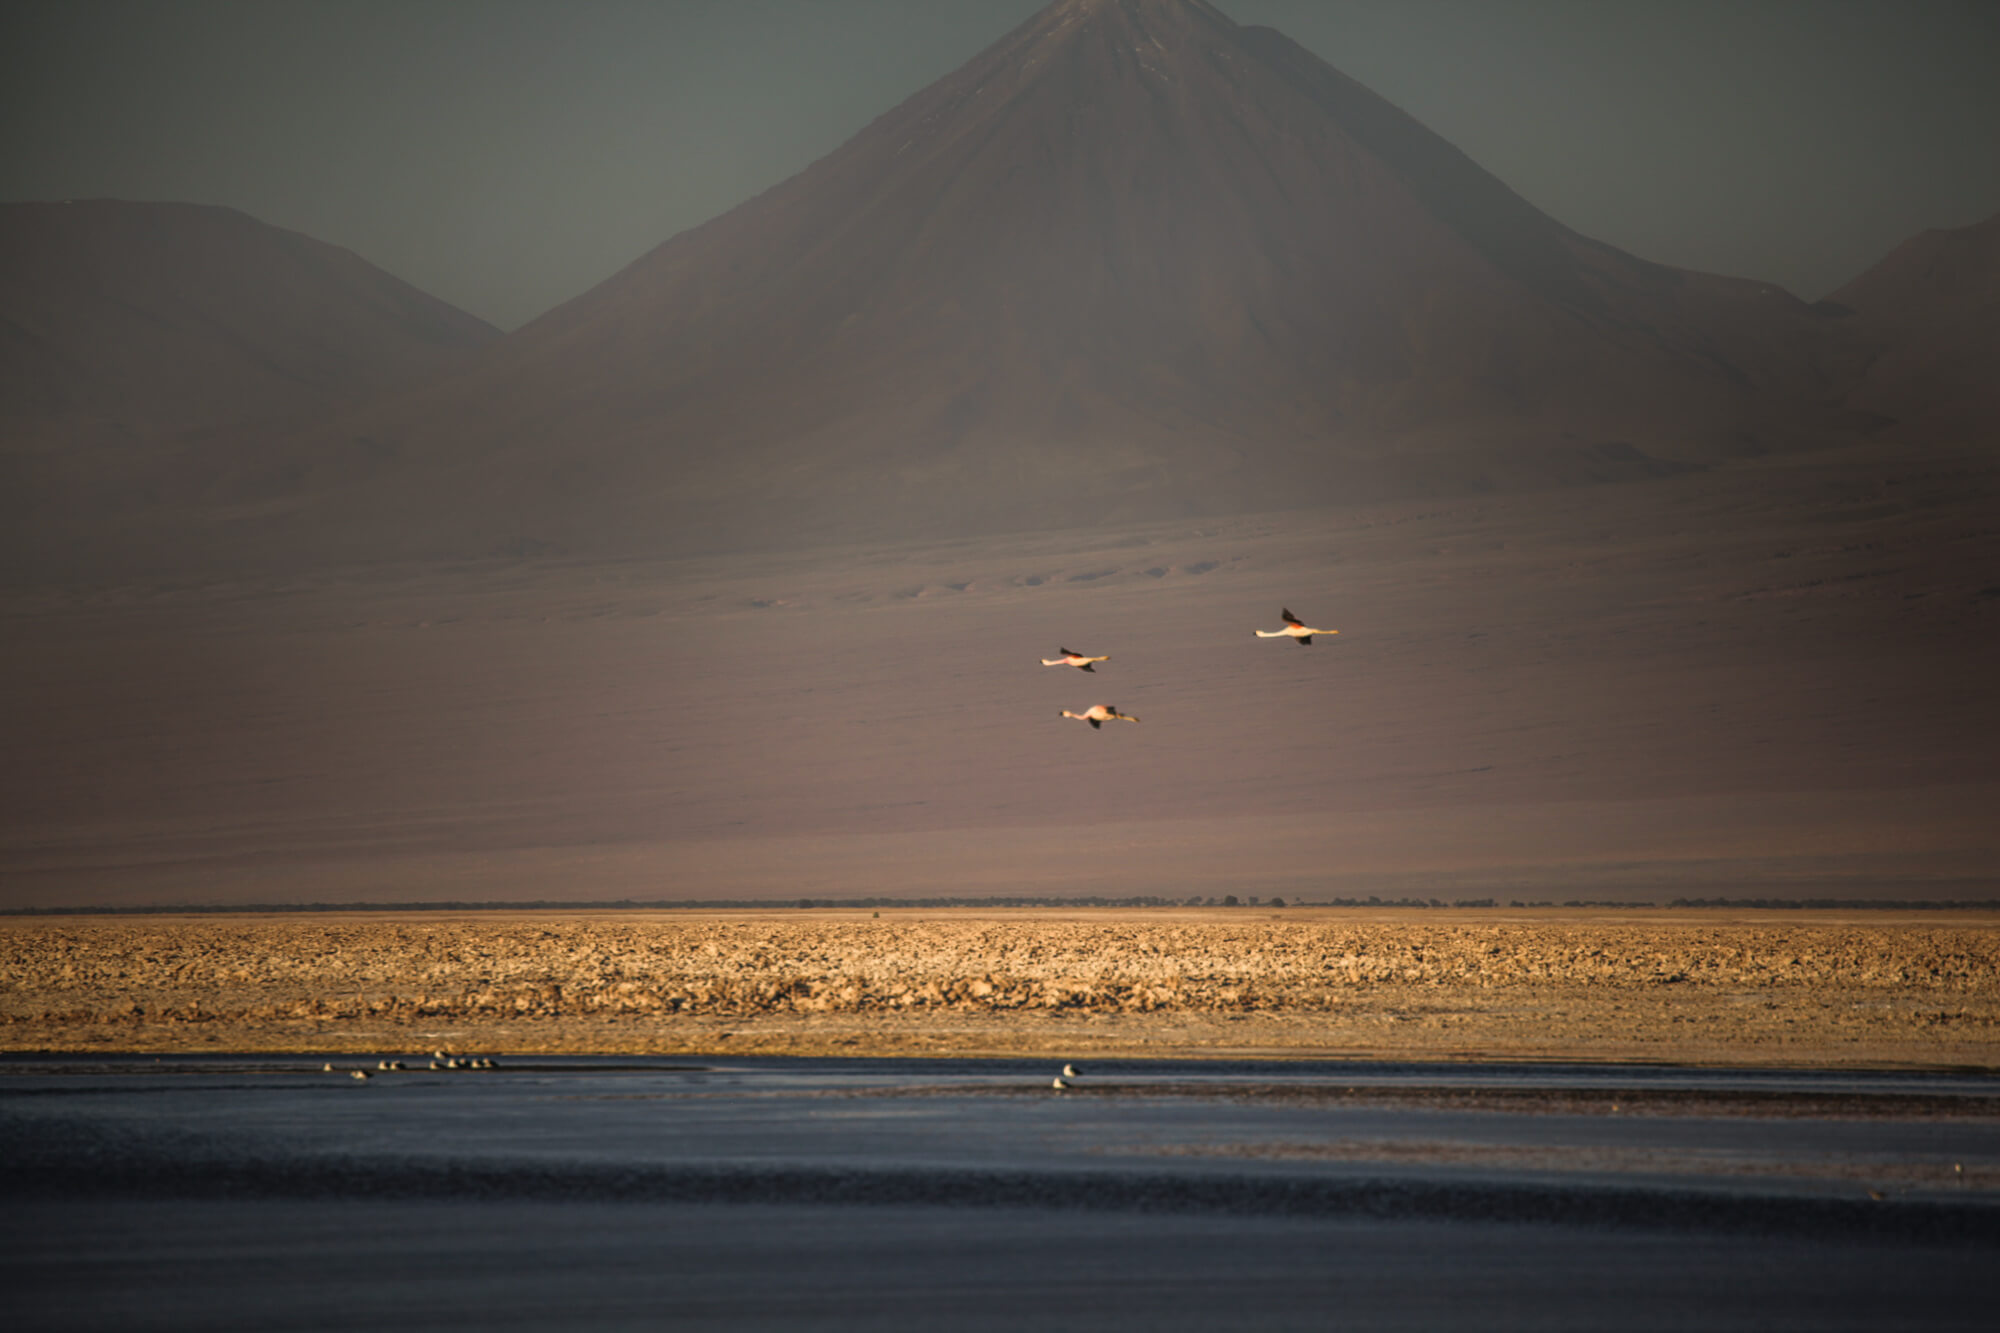 flamingos and volcanoes in Salar de Atacama